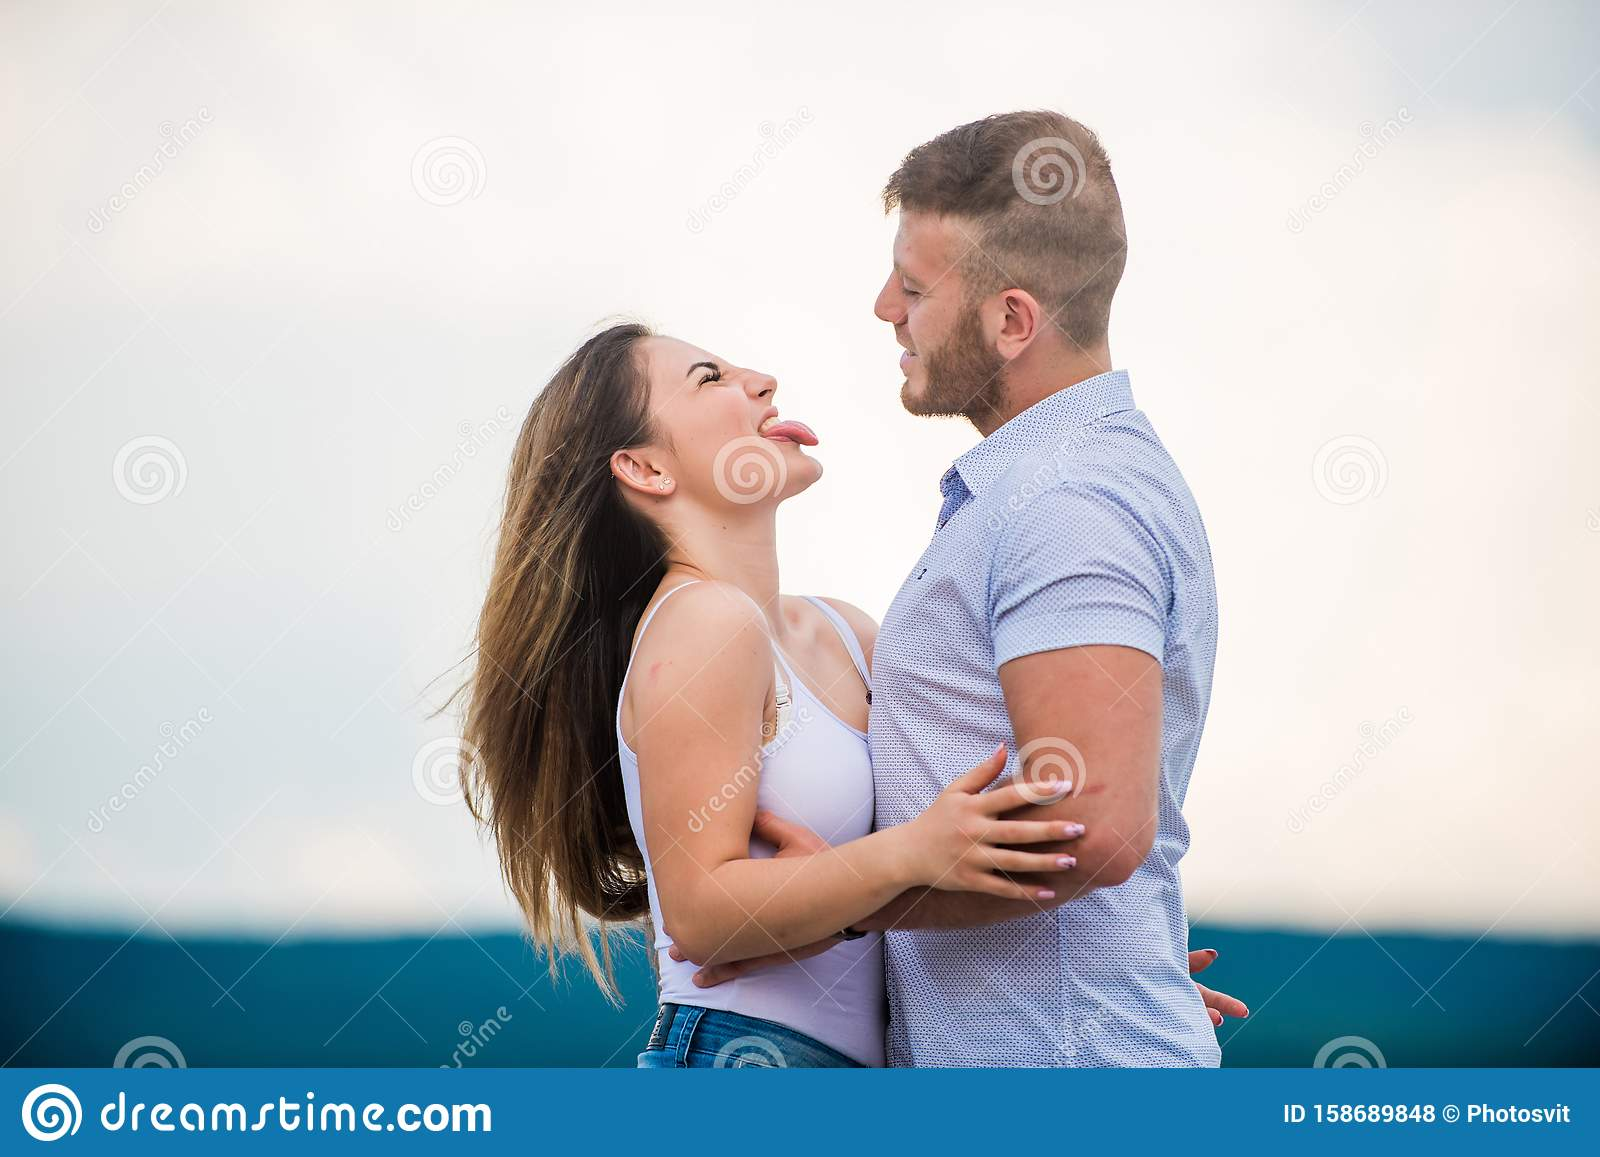 Honeymoon Concept Romantic Relations True Love Family Love Couple In Love Supporting Her Cute Relationship Man Stock Photo Image Of Date Cuddle 158689848